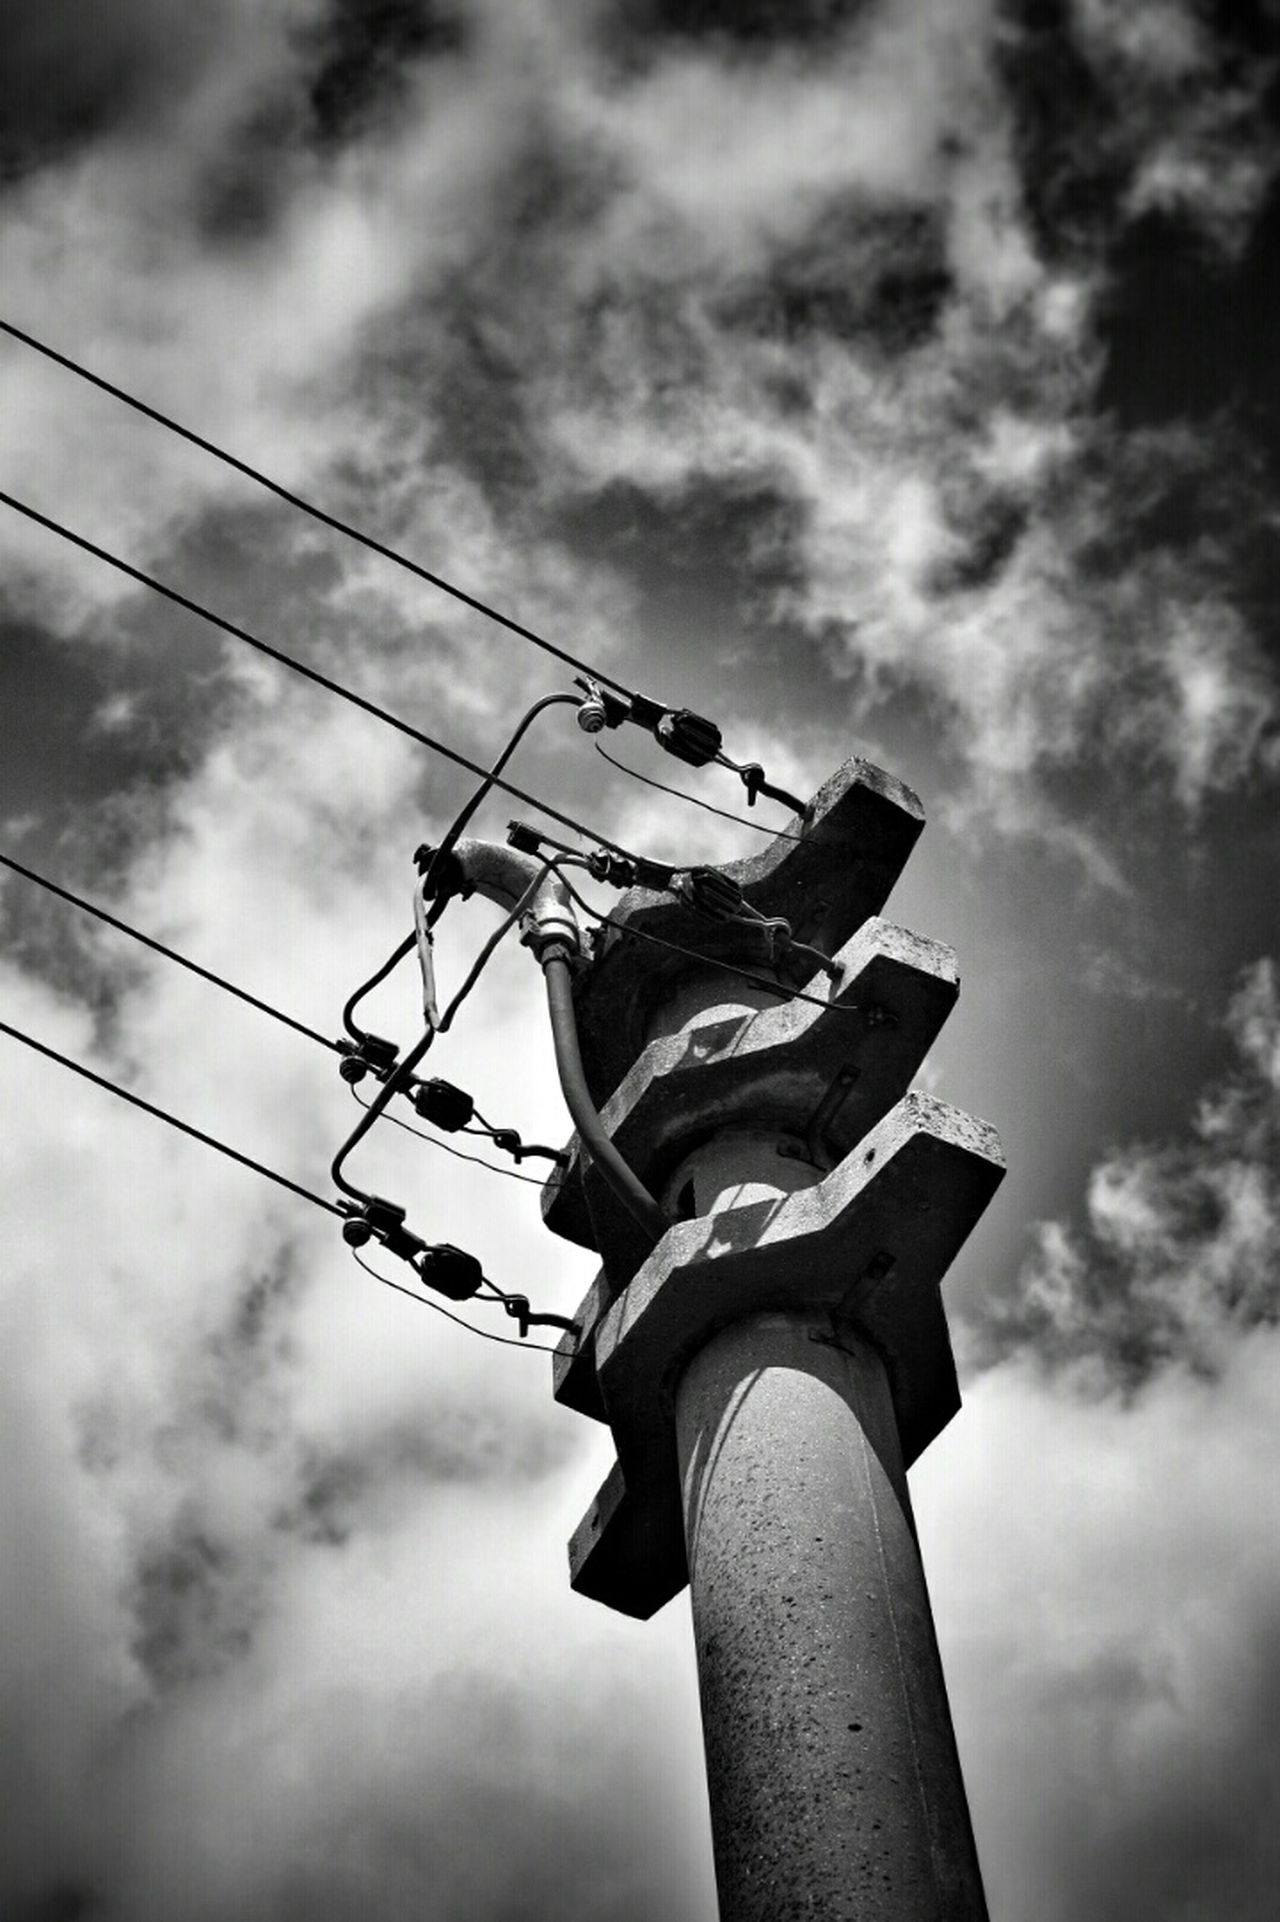 Strommast Urban Landscape Walking Around The City  Black And White Photography Monochrome Black And White Enjoying The View Getting Inspired S/w-Fotografie Street Photography